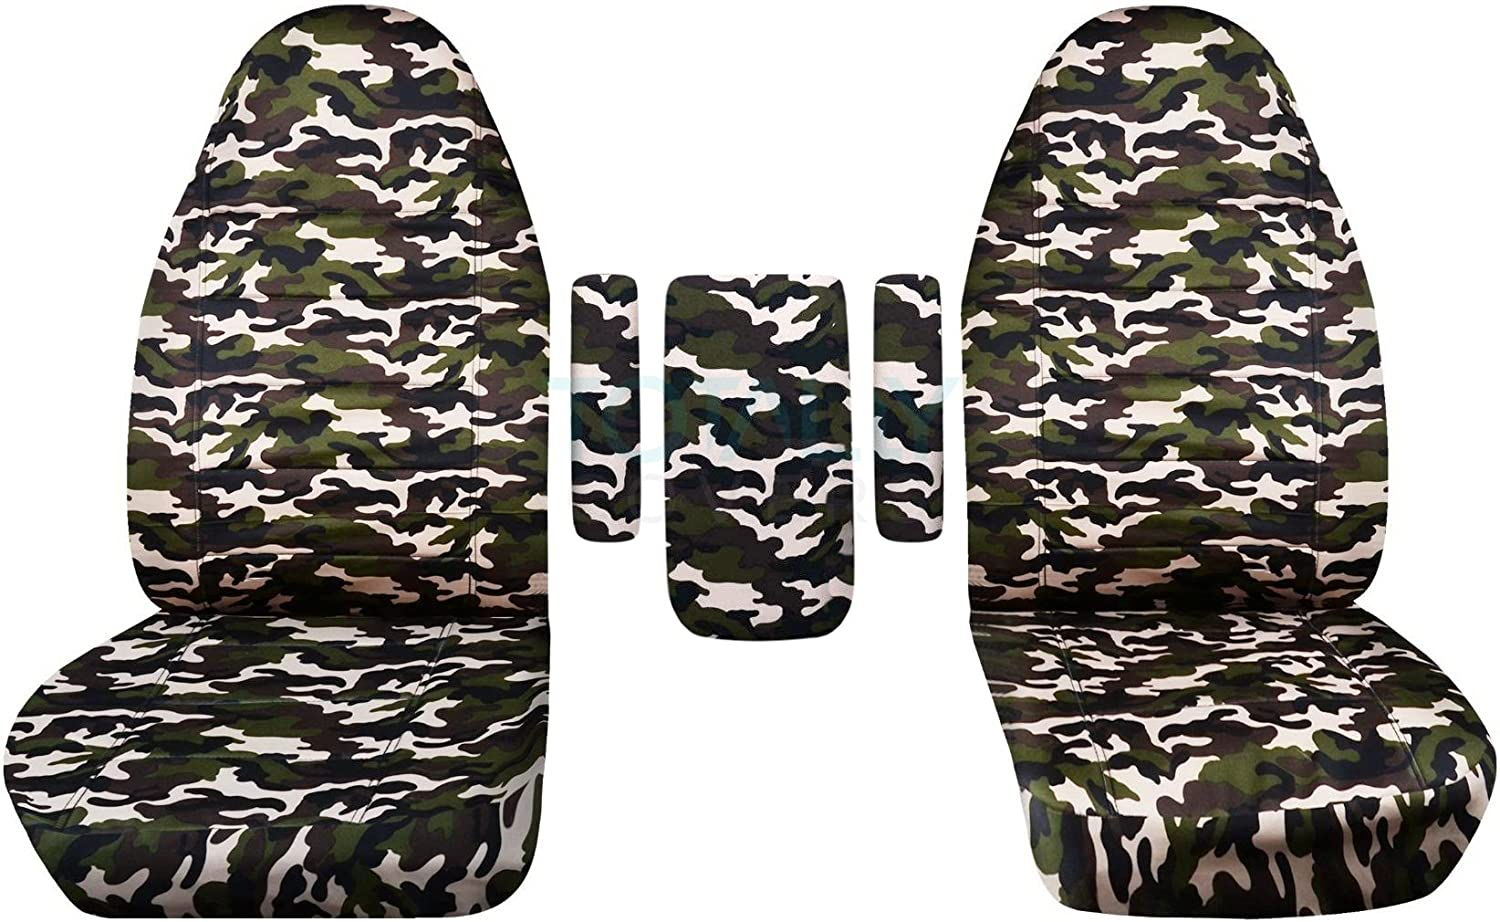 1999-2001 Ford F-150 F-250 F-350 Camo Truck Captains Chairs Seat Covers 3 Armrest Covers (One per Seat + Center): Gray Real Tree Camouflage (16 Prints) 2000 F-Series F150 F250 F350 Designcovers